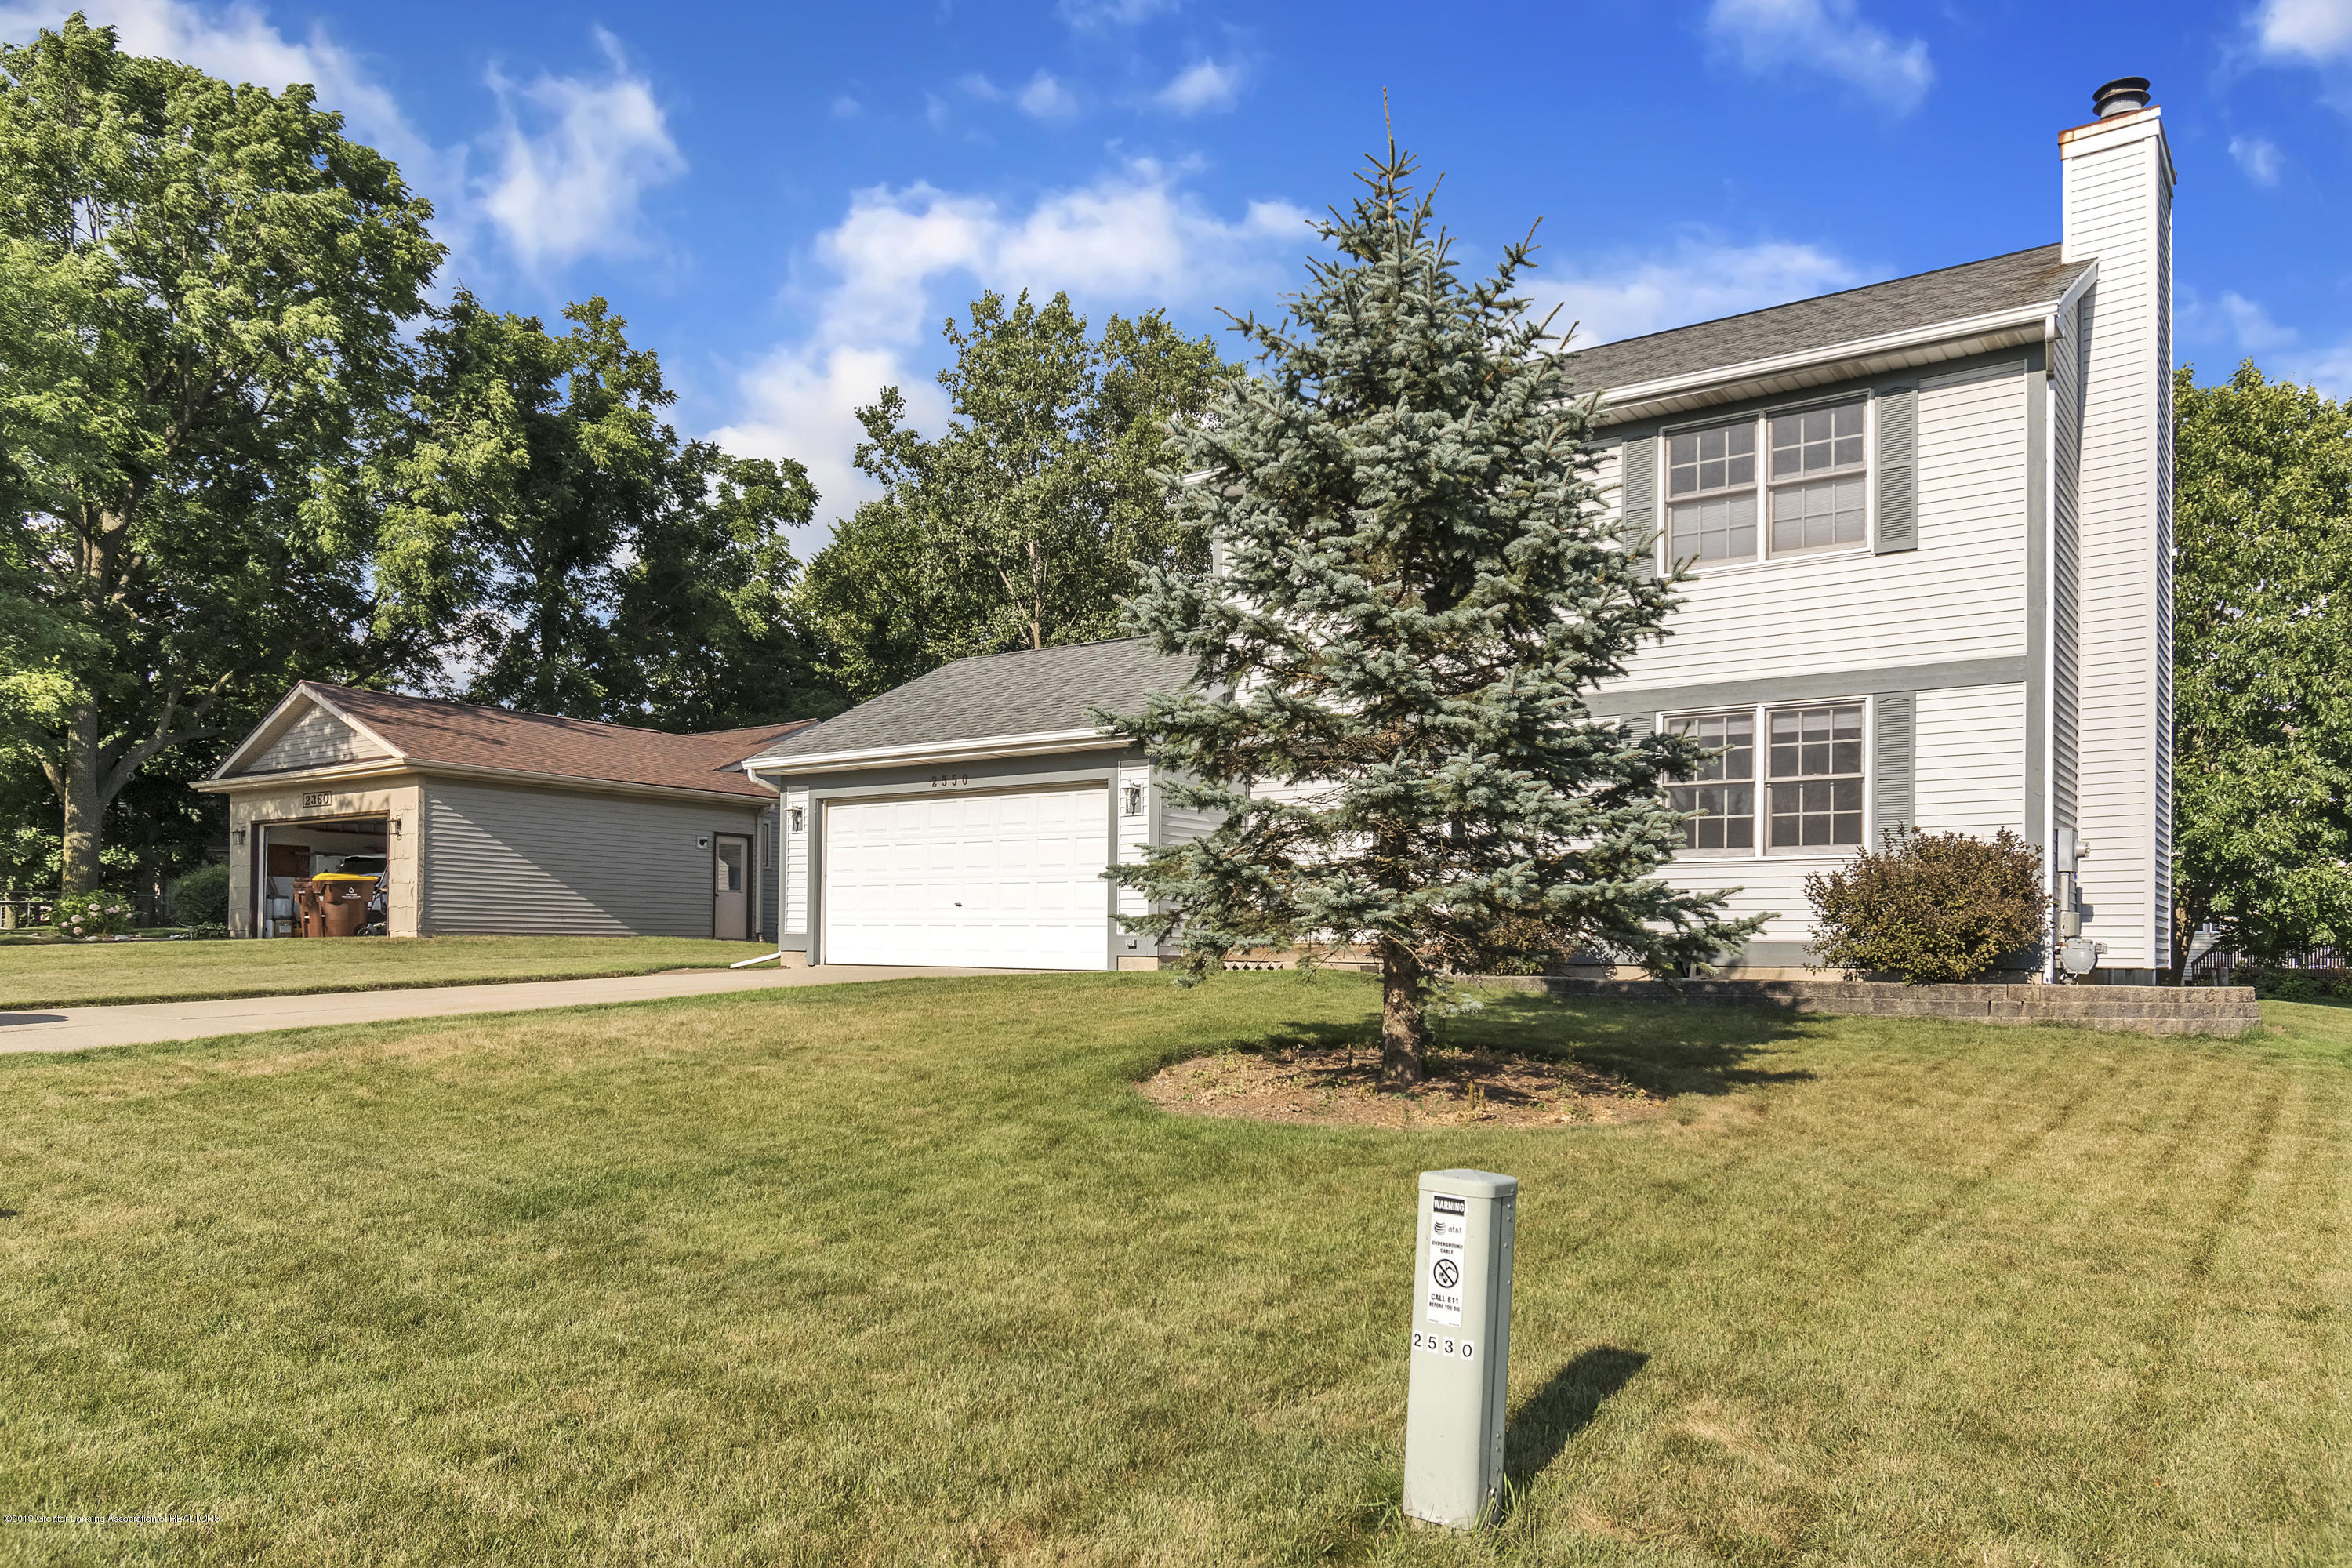 2350 Pine Tree Rd - 2350-Pine-Tree-Rd-Holt-MI-windowstill-4 - 4